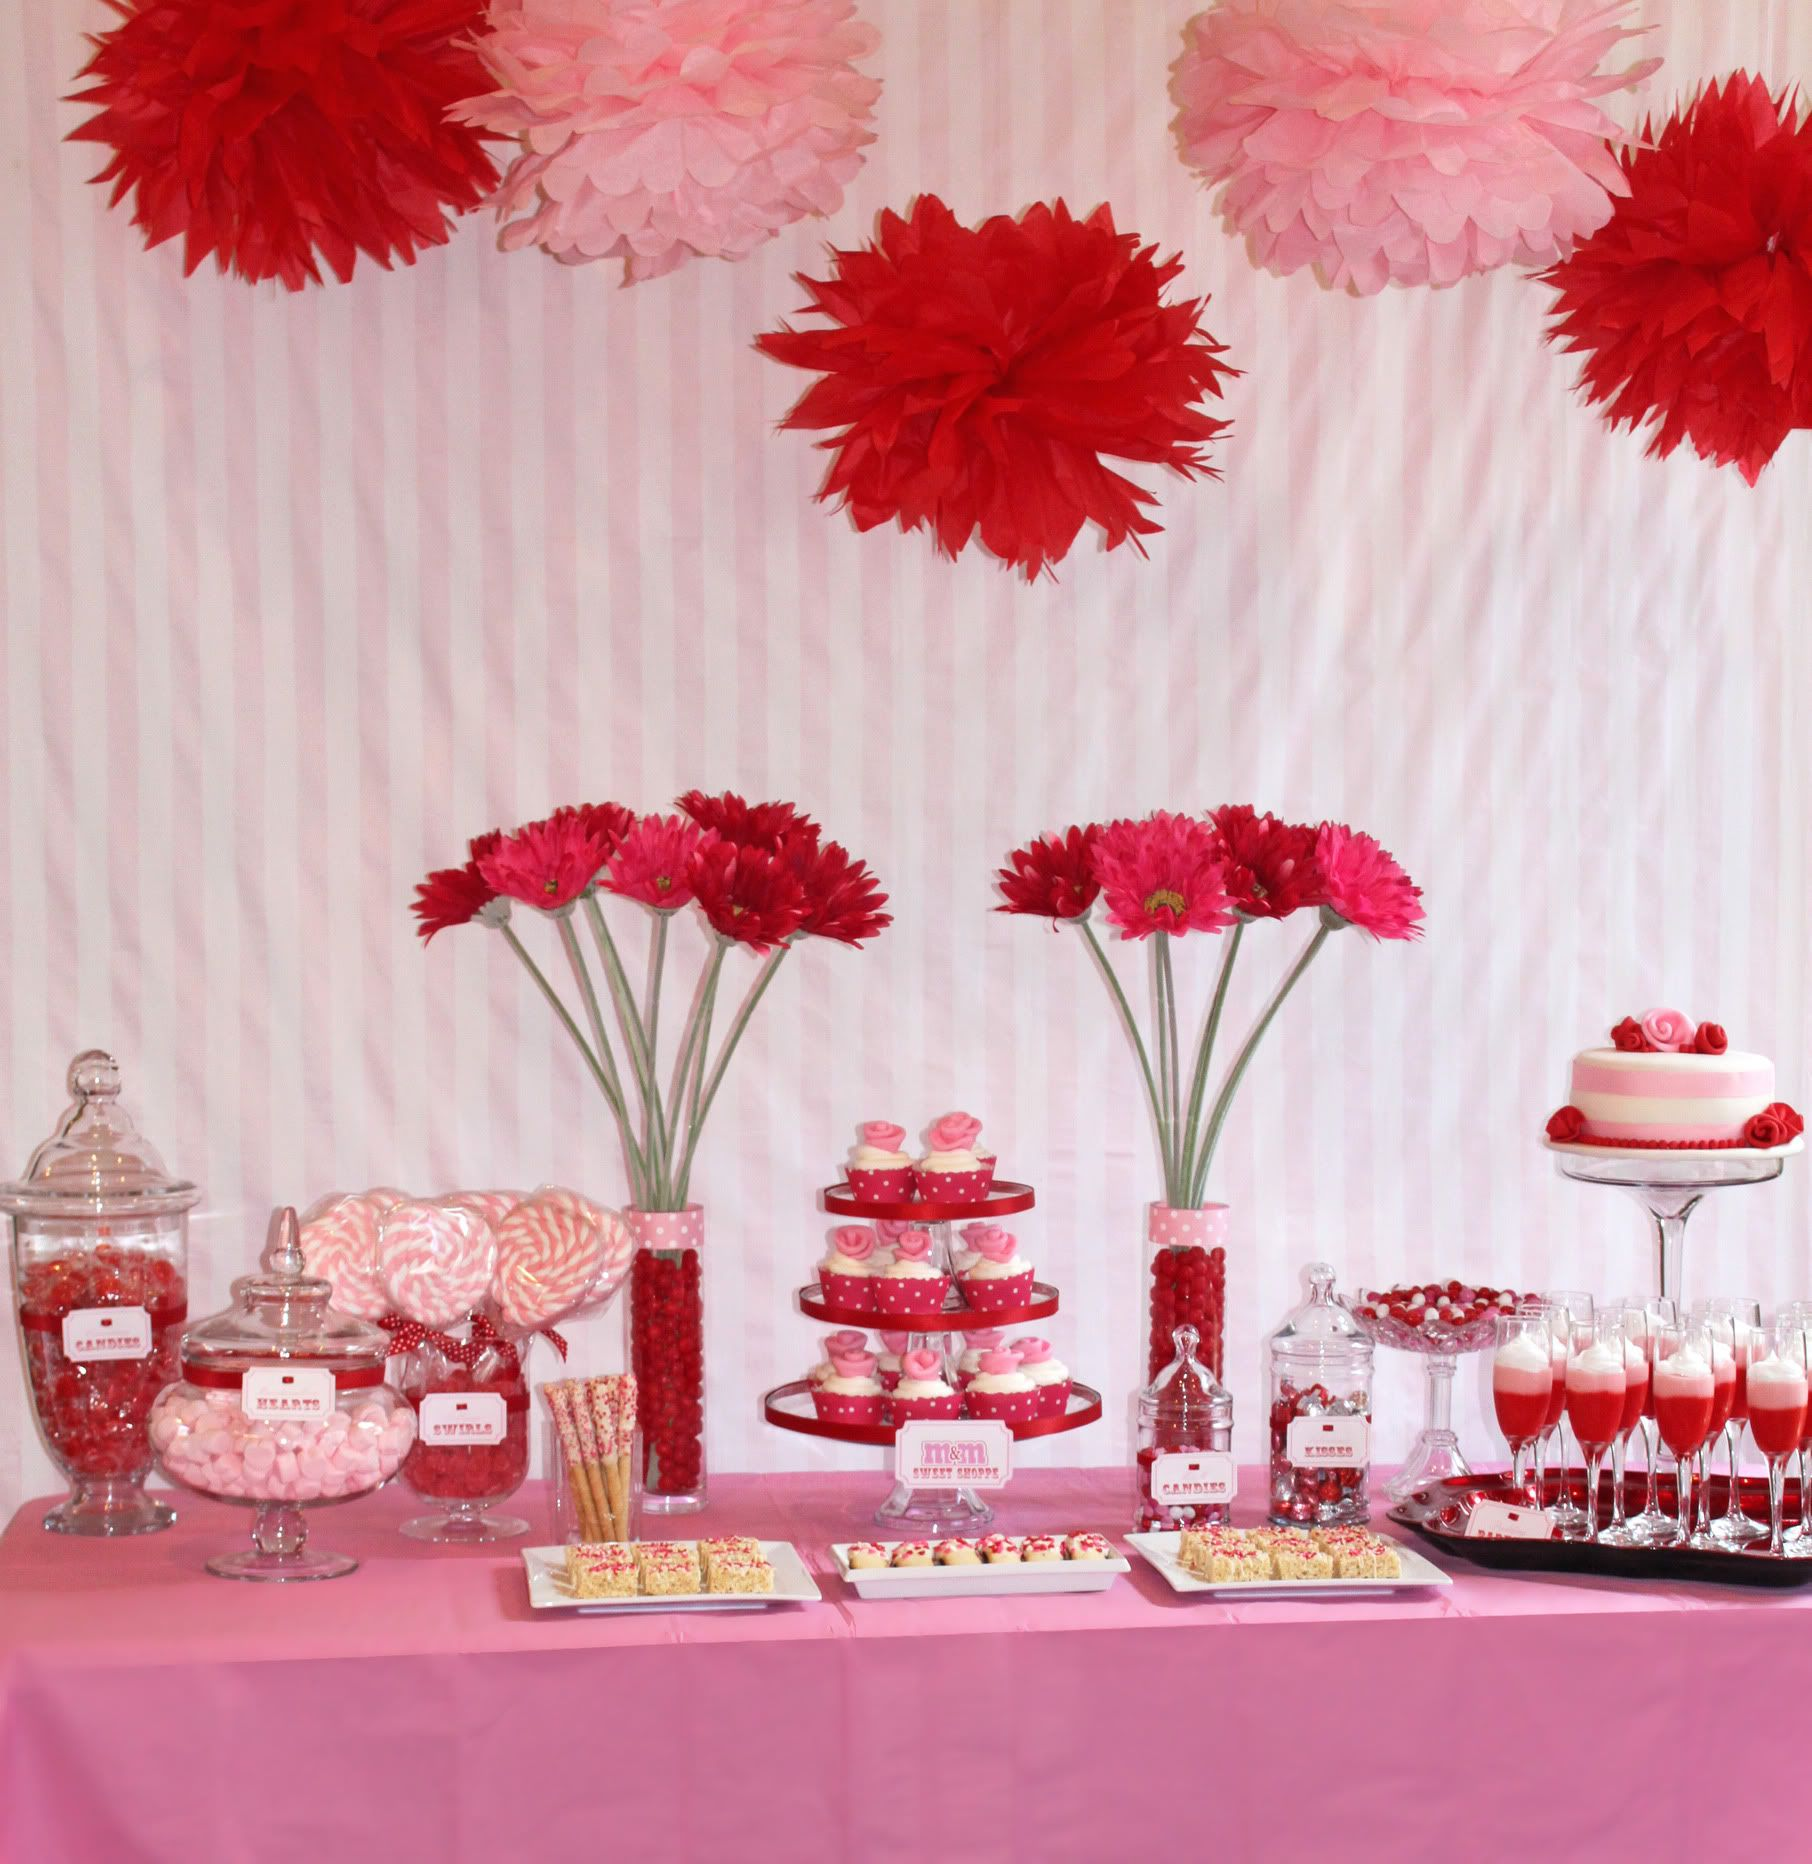 Christmas dessert table decoration ideas - Valentines Day Party Look At All These Super Cute Ideas